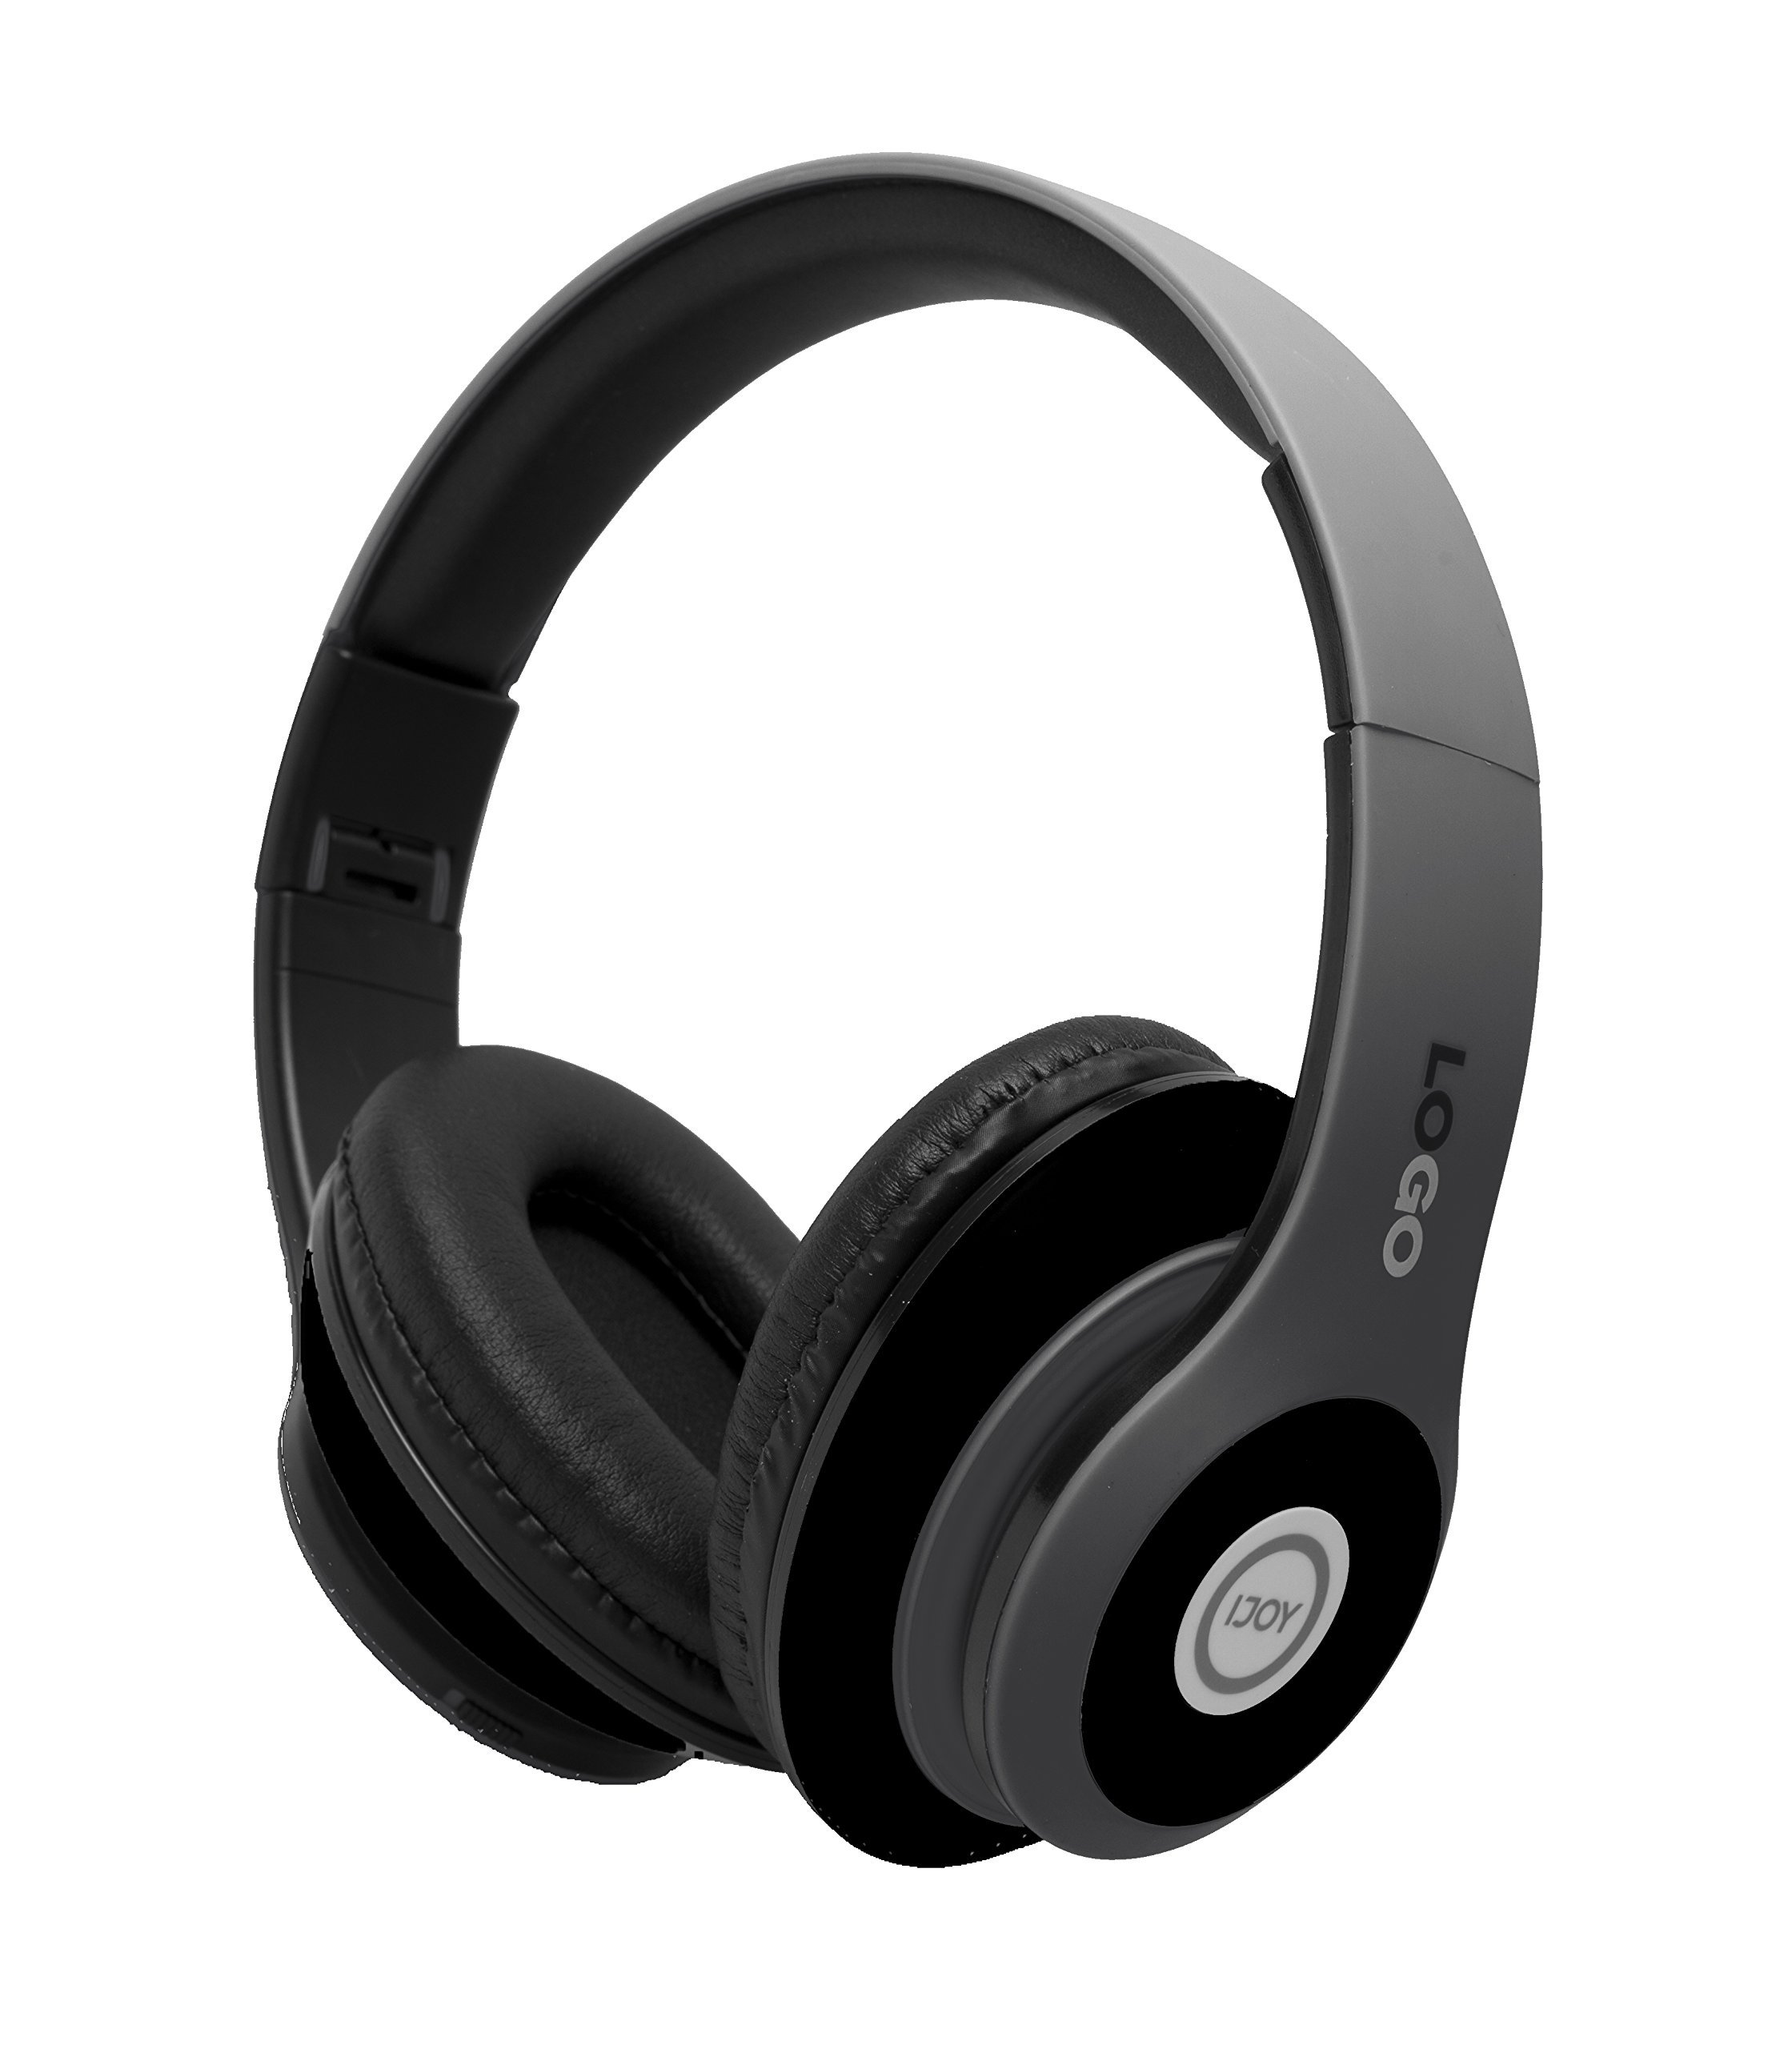 Auriculares Ijoy Matte Finish Premium Recargable Inalambrico Bluetooth Over-ear Plegable Headset Con Mic (stealth)